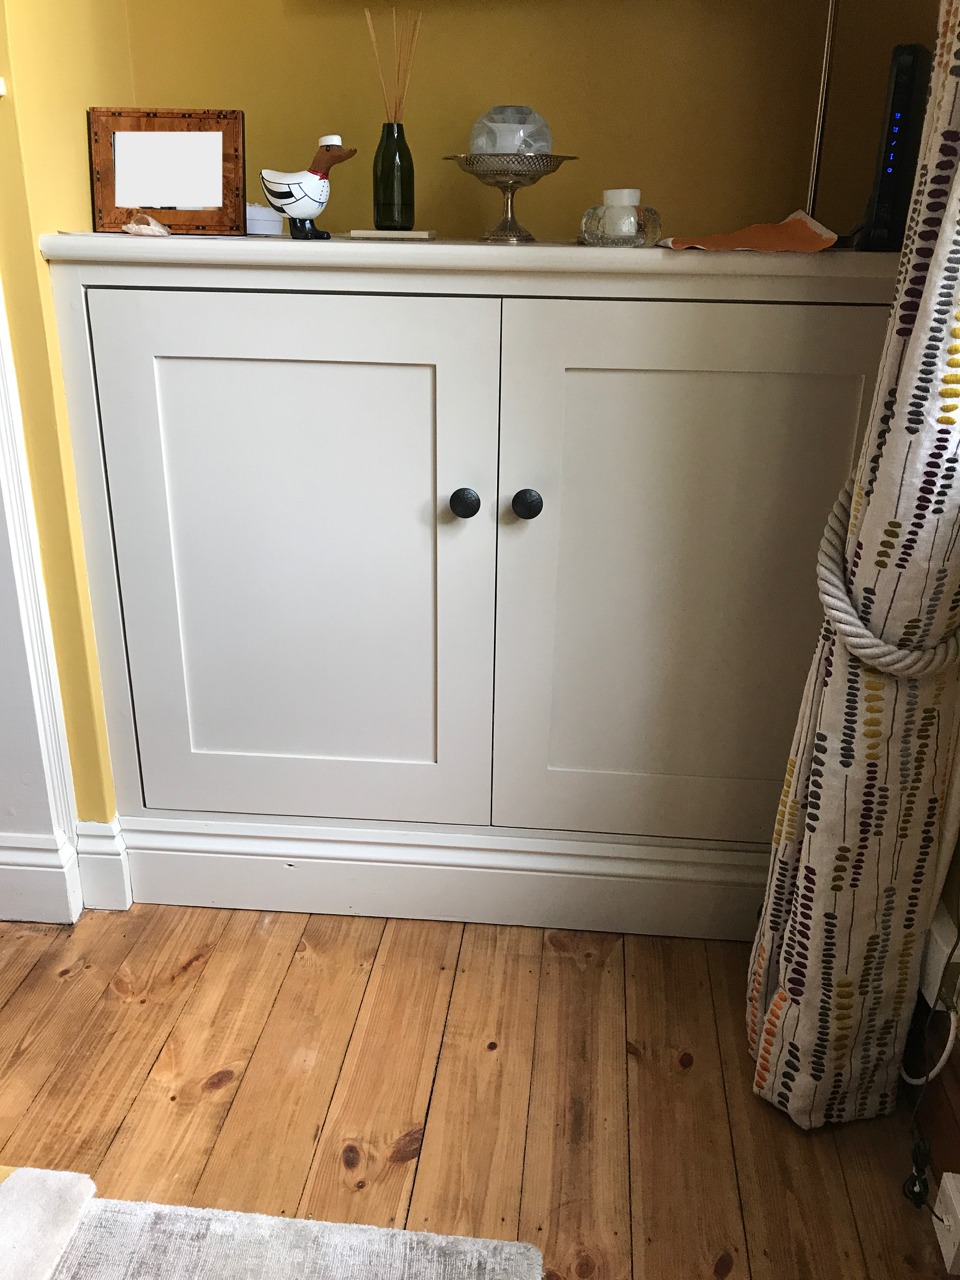 Bespoke cabinets and cupboards